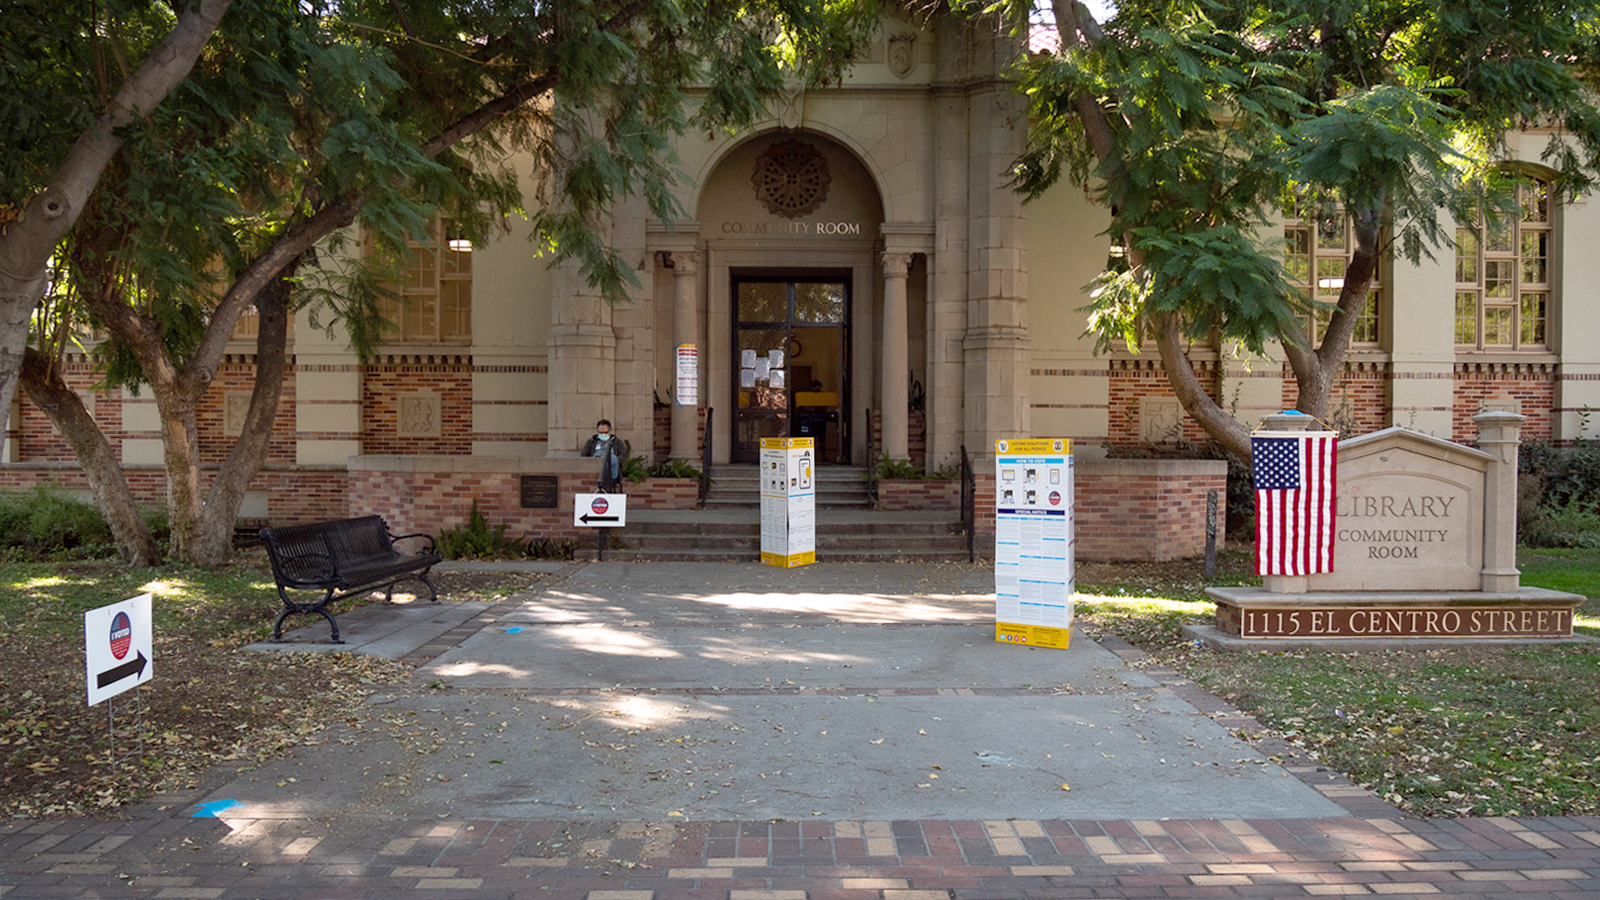 south-pasadena-news-10-28-2020-elections-vote-center-community-room-library-023